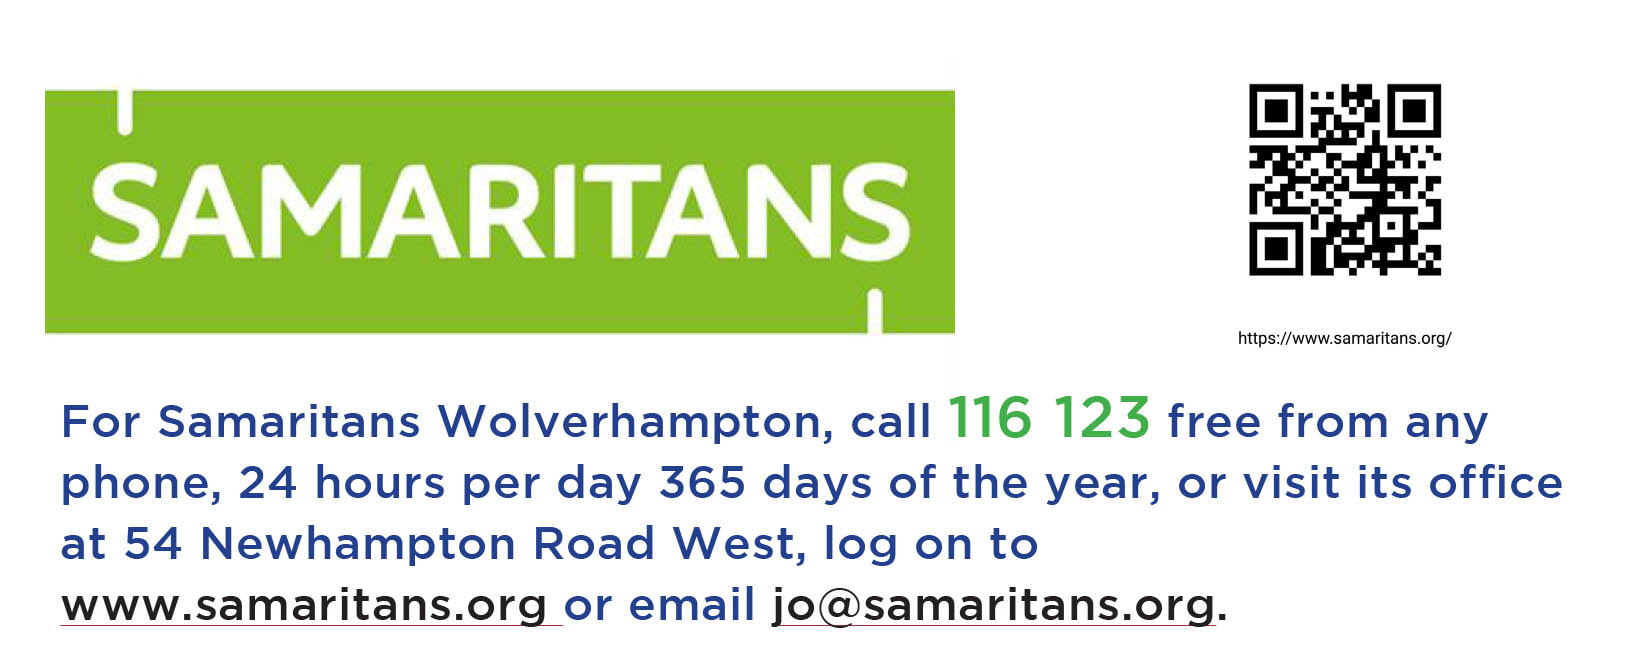 Banner linking to Samaritans website